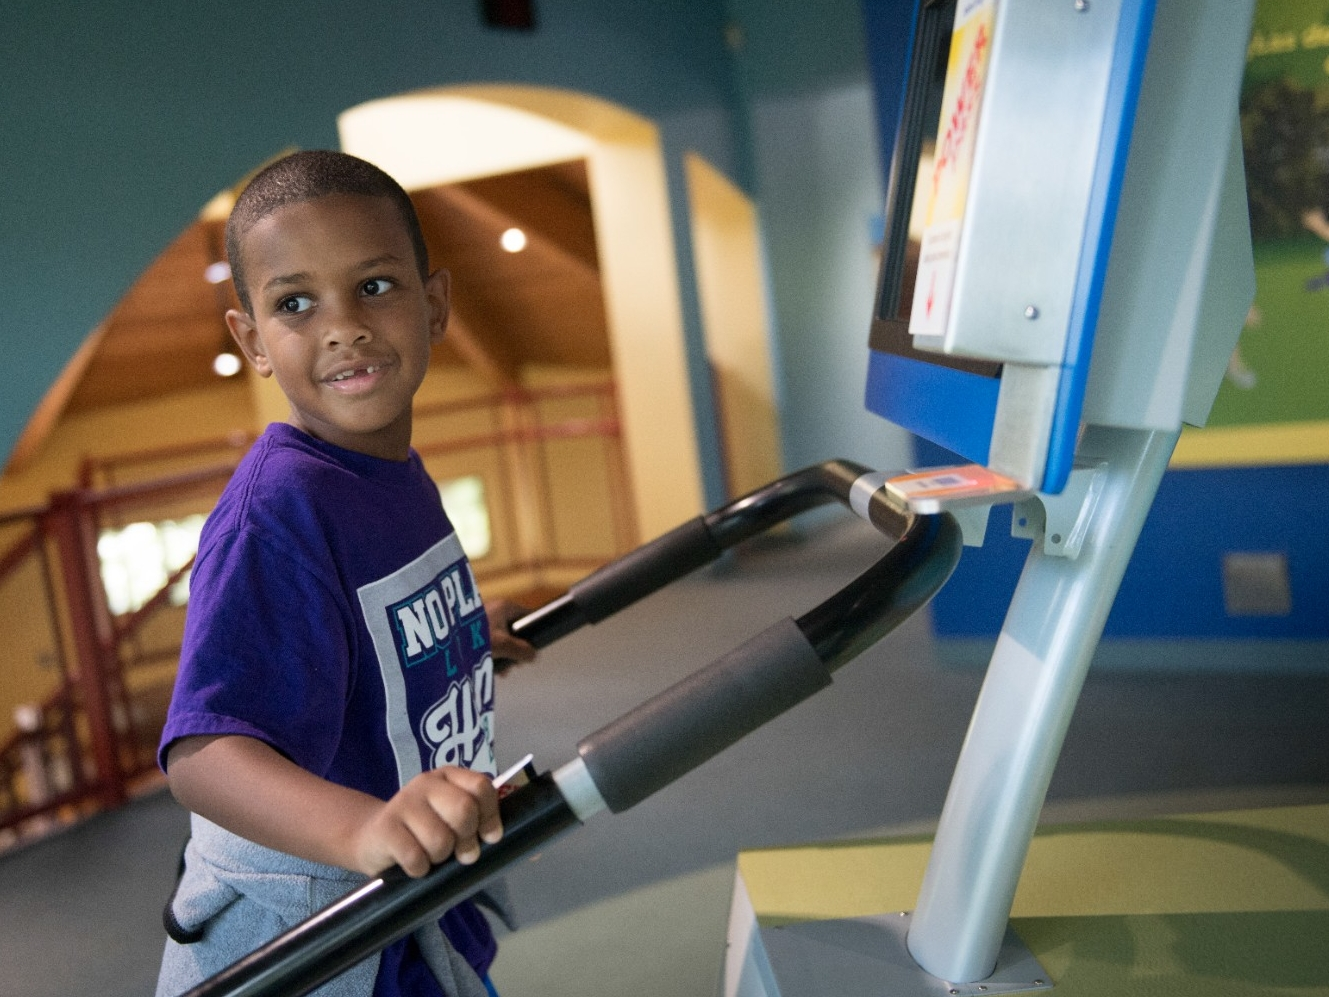 A young boy uses an interactive stair climbing station at a museum.